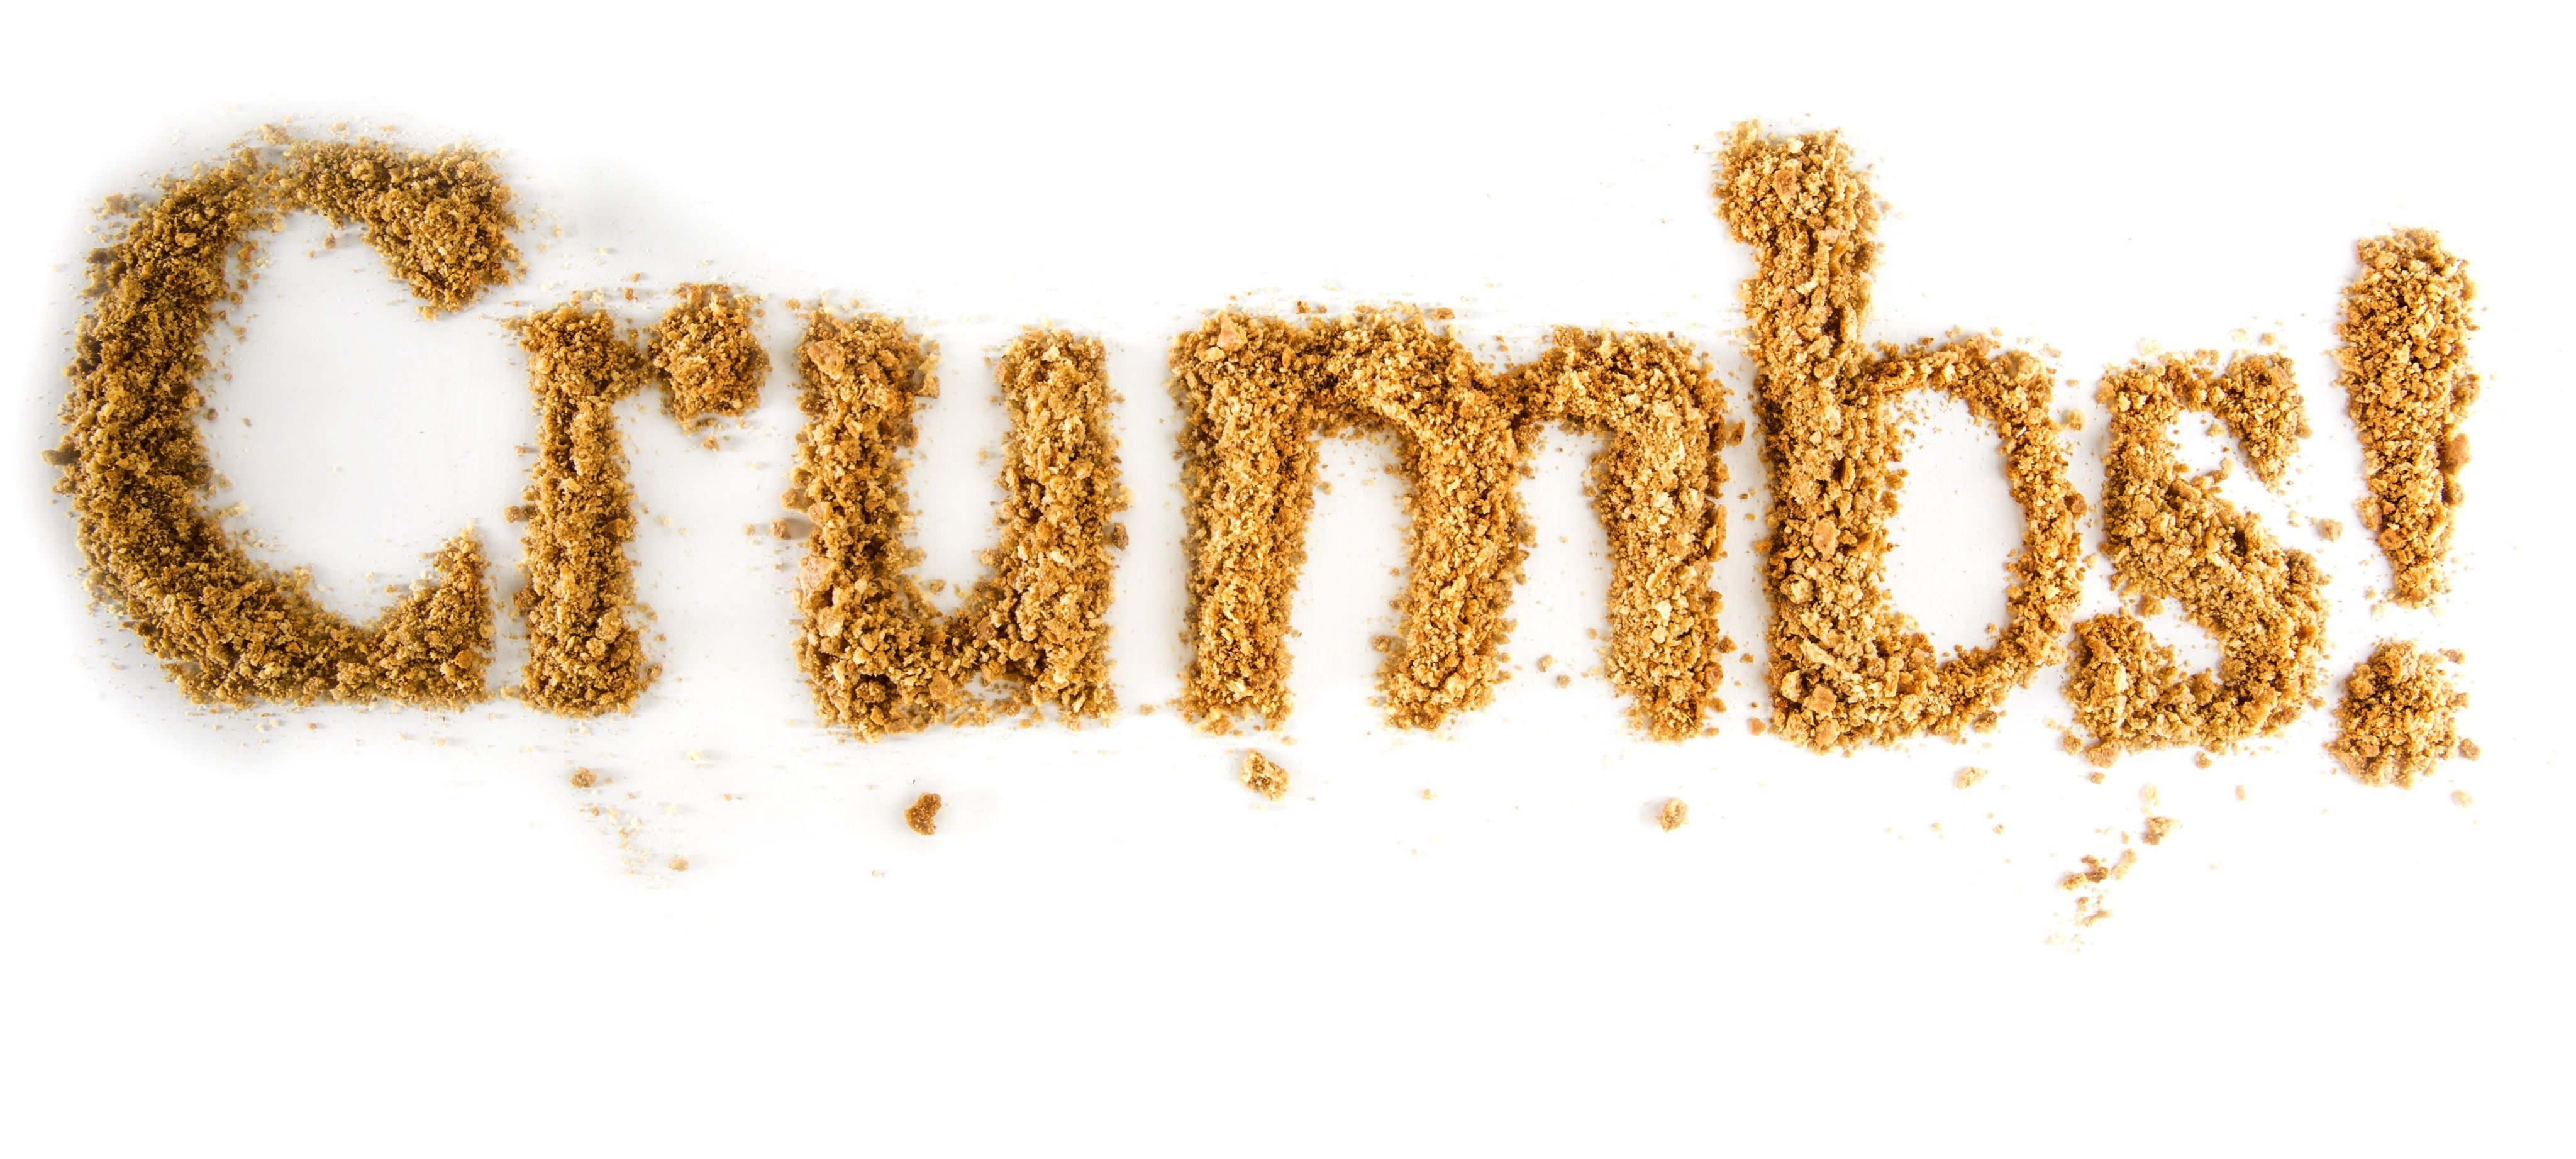 Foods From Around The World Crumbs Can Be A Cook S Best Friend Kuali